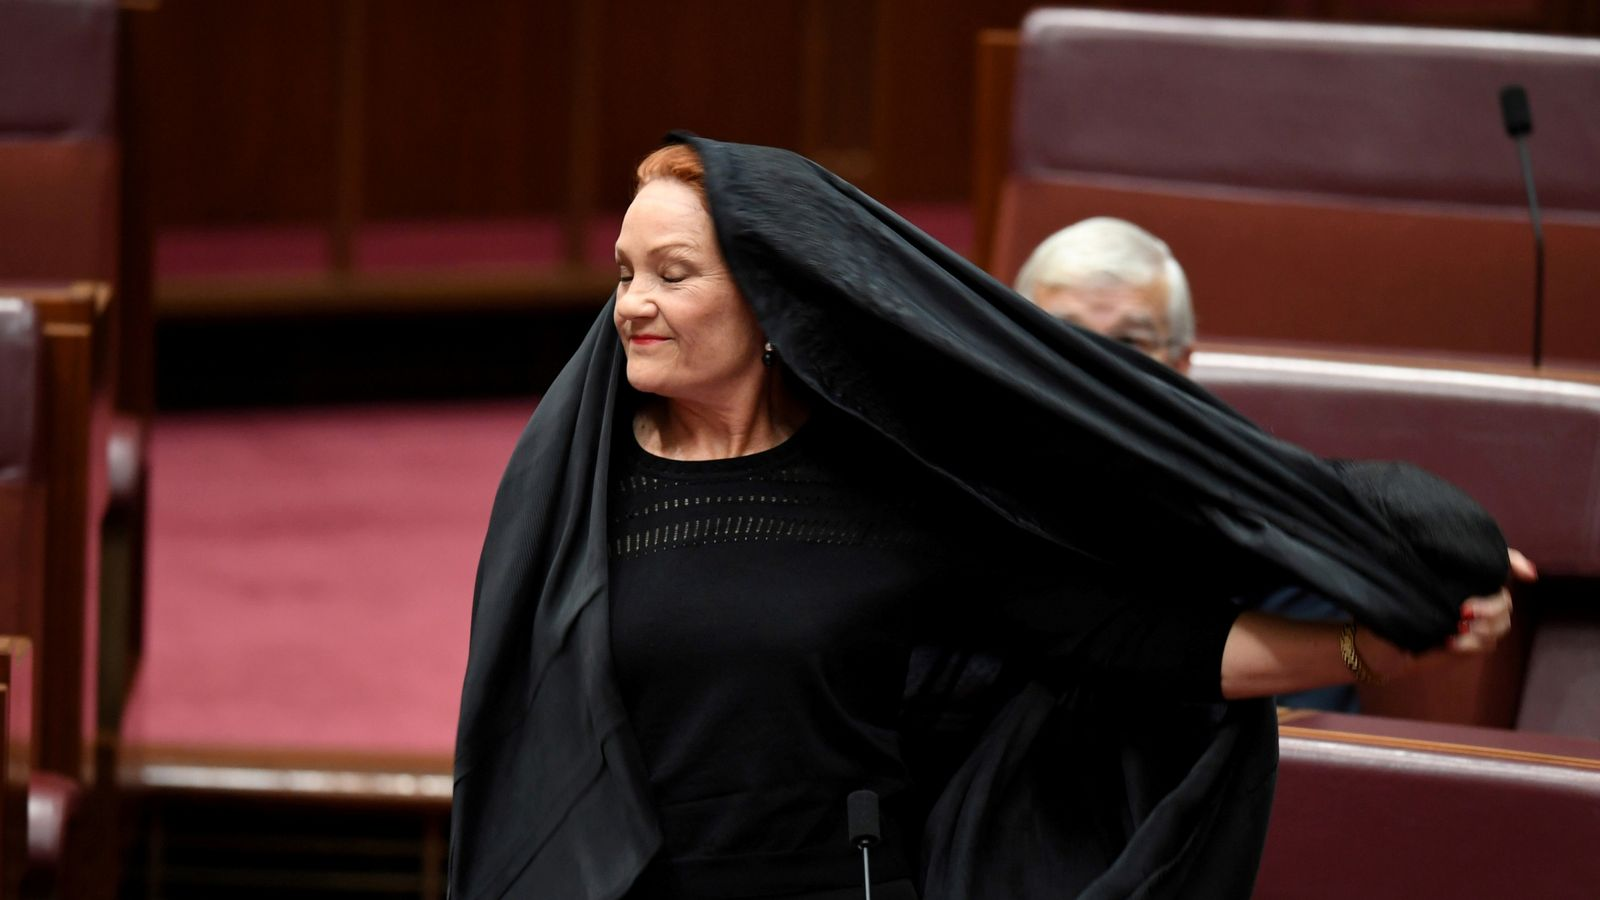 Anti-Muslim senator wears burka in Australian parliament